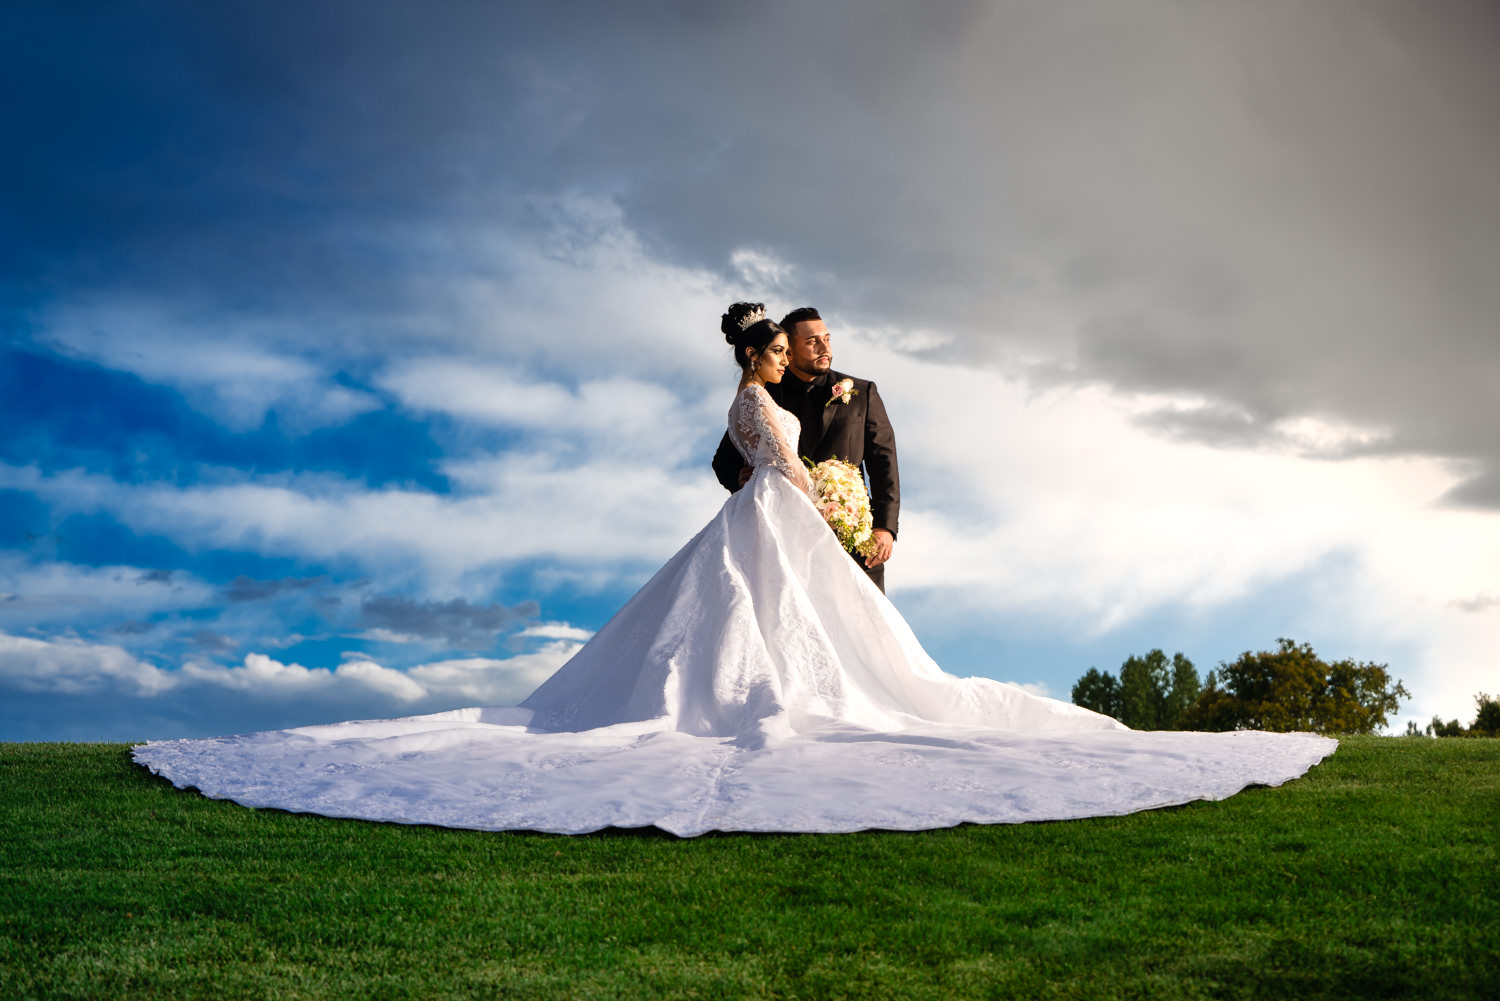 Denver Indian Wedding at the Omni Interlocken Resort. Photographed by JMGant Photography